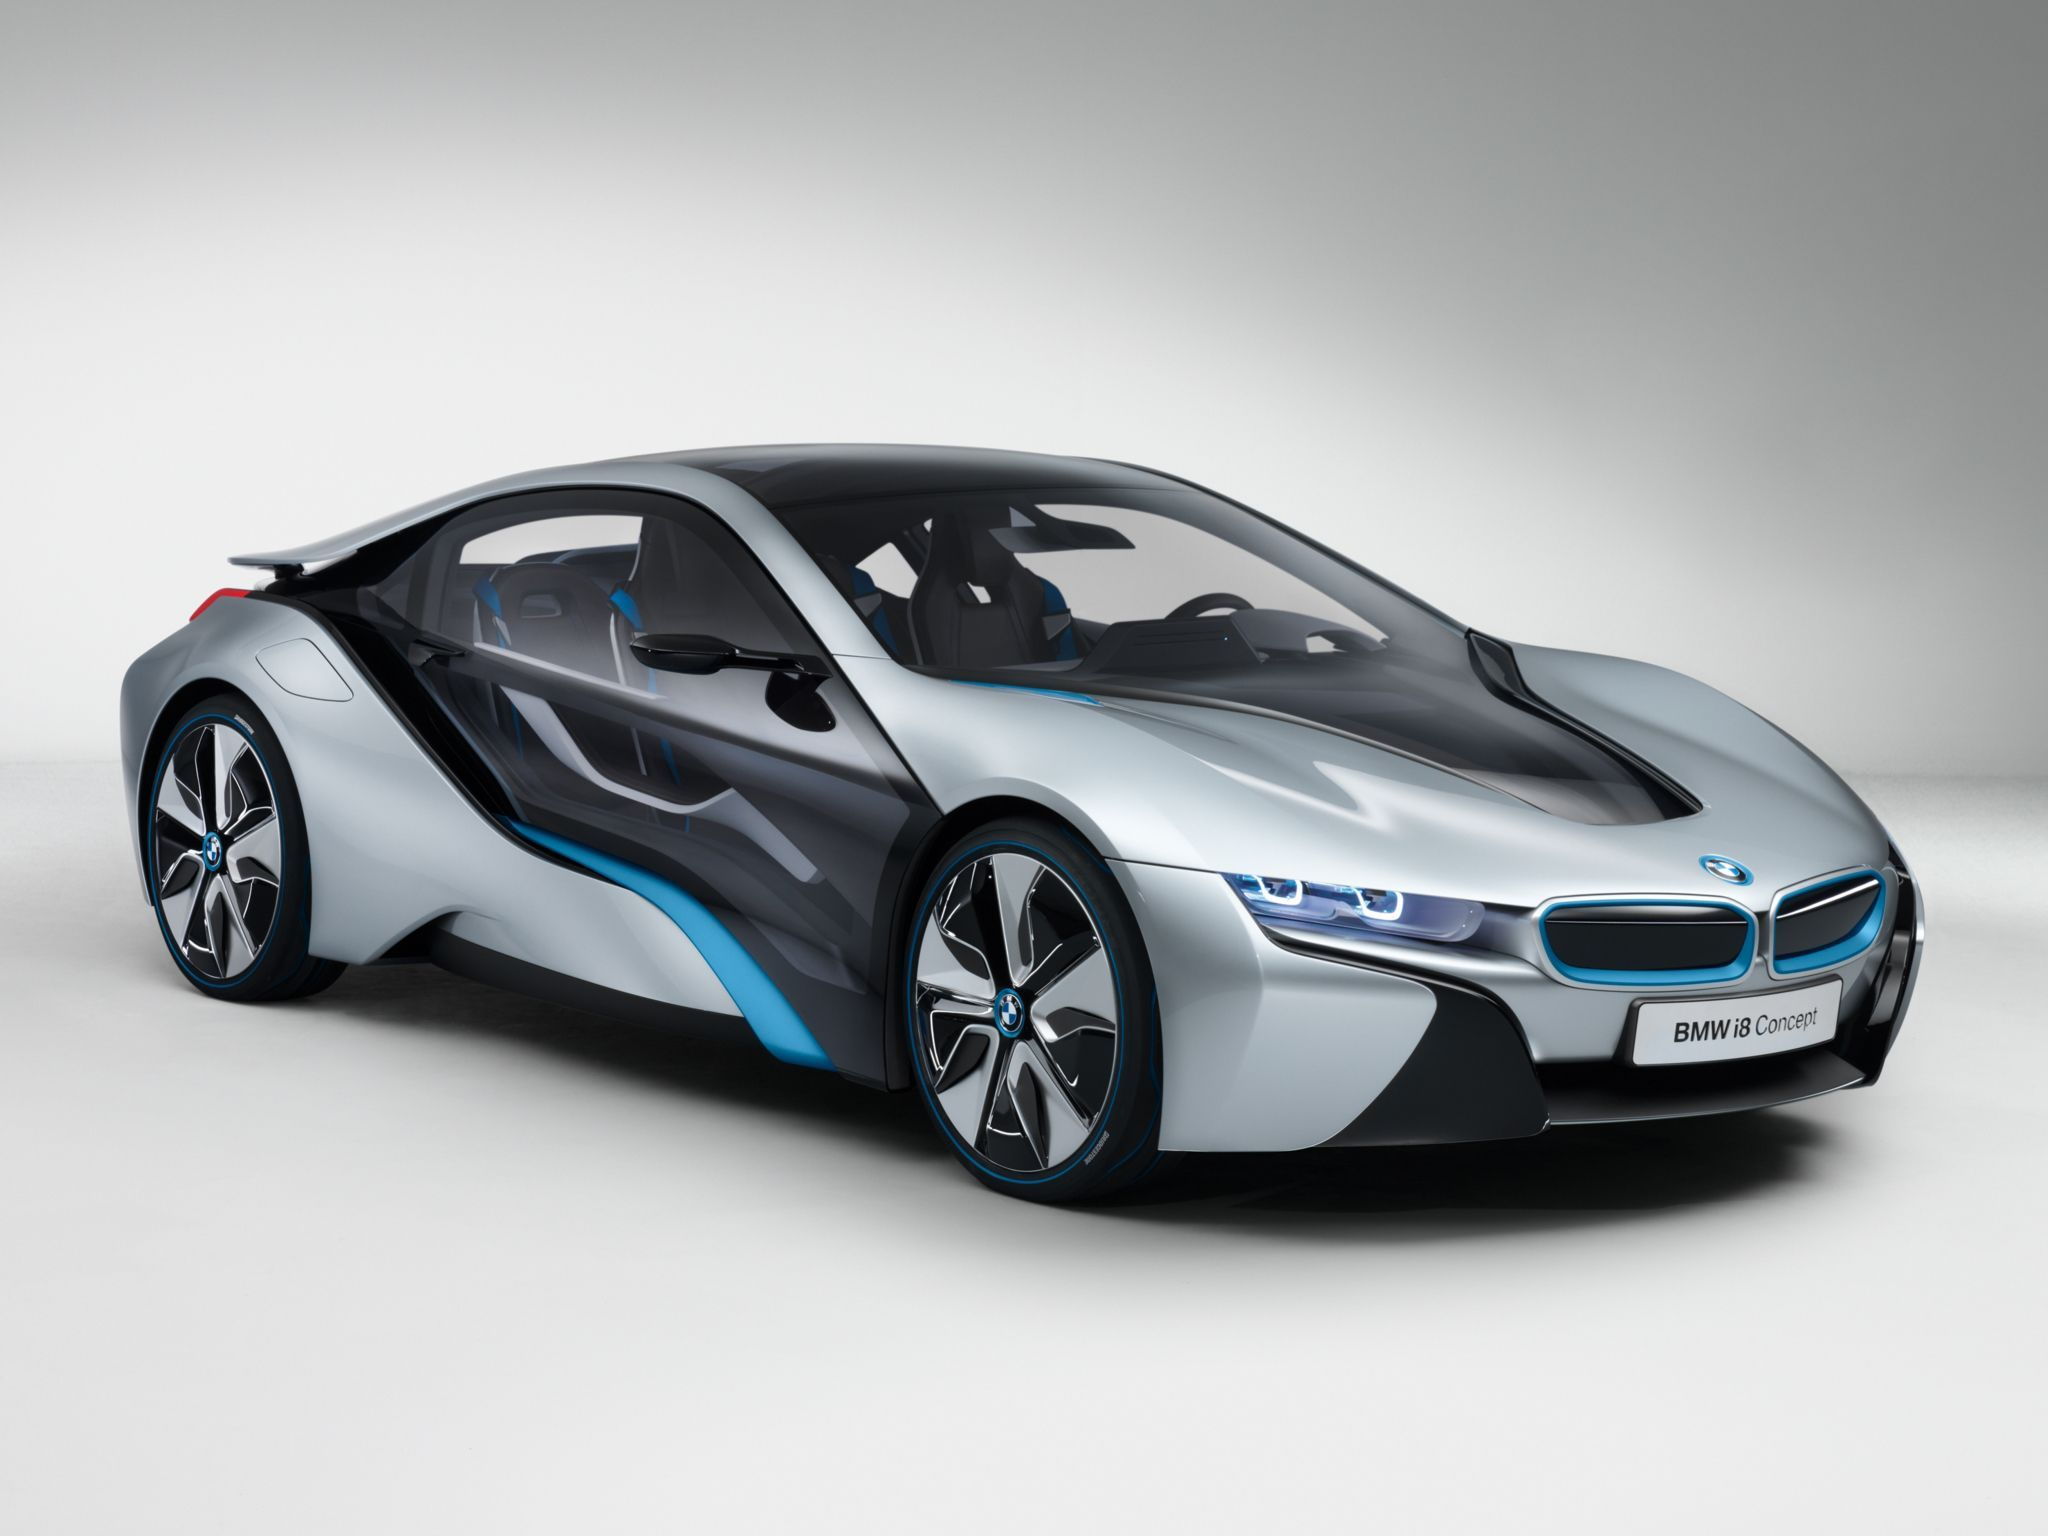 best sports cars ever pic 04 Bmw sports car, Hybrid